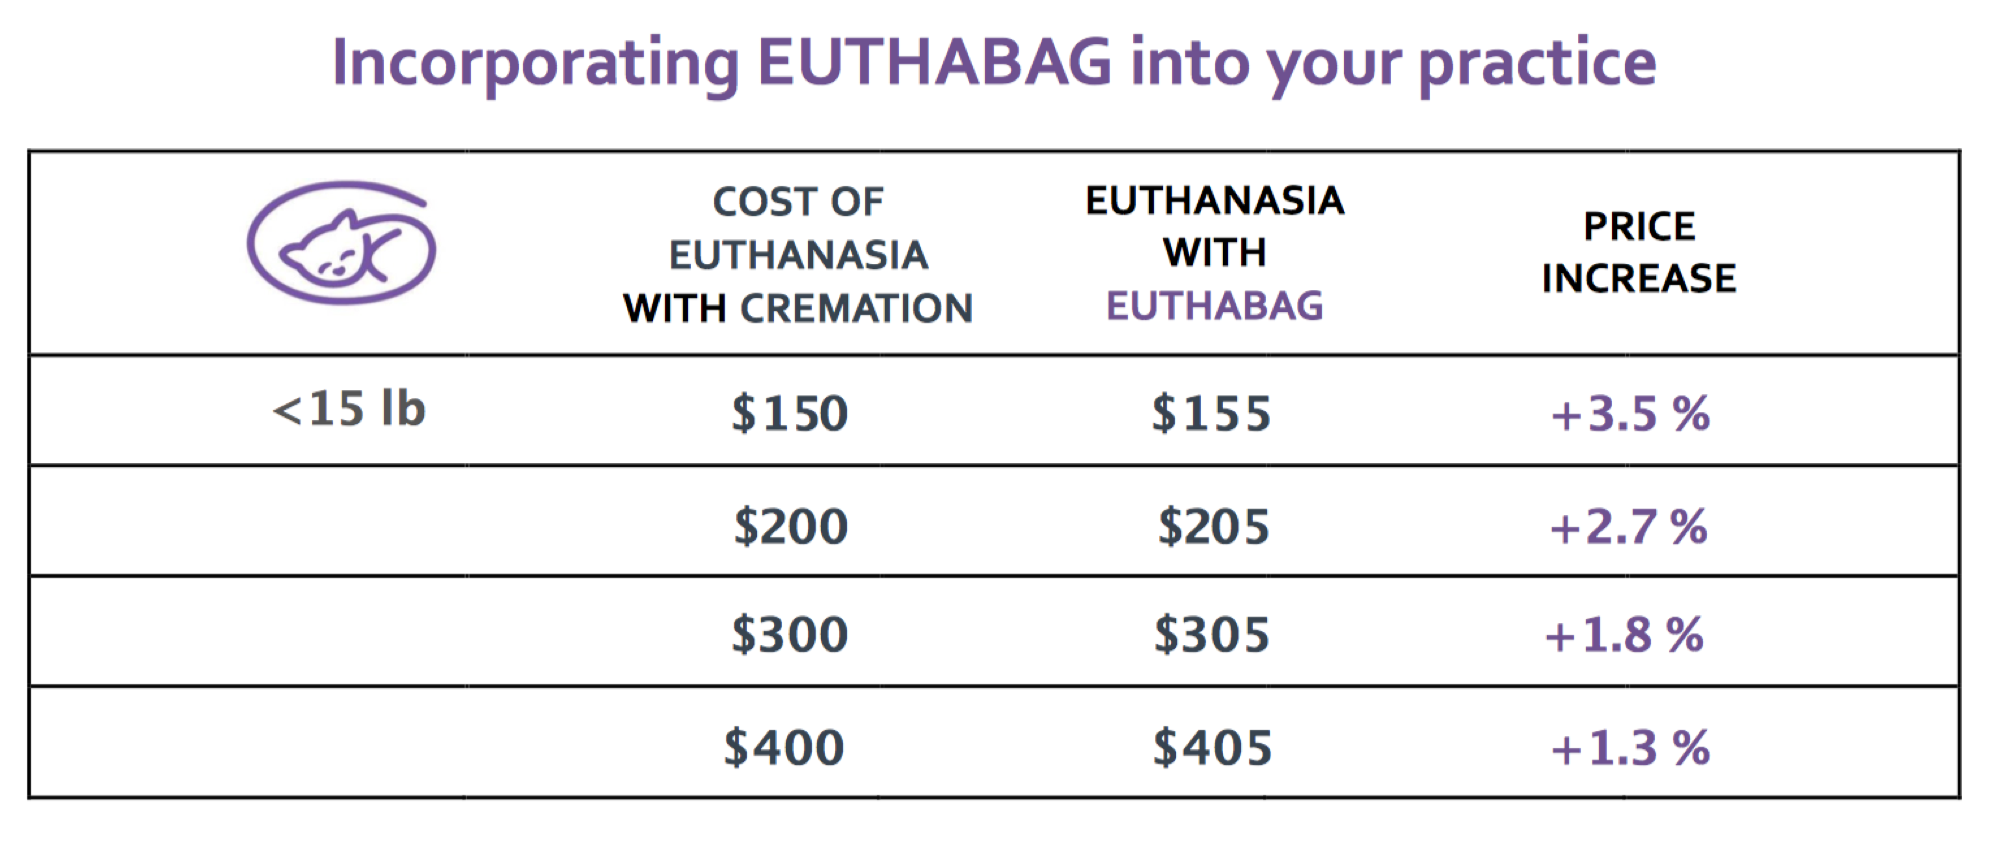 Impact of incorporating EUTHABAG on the price of services